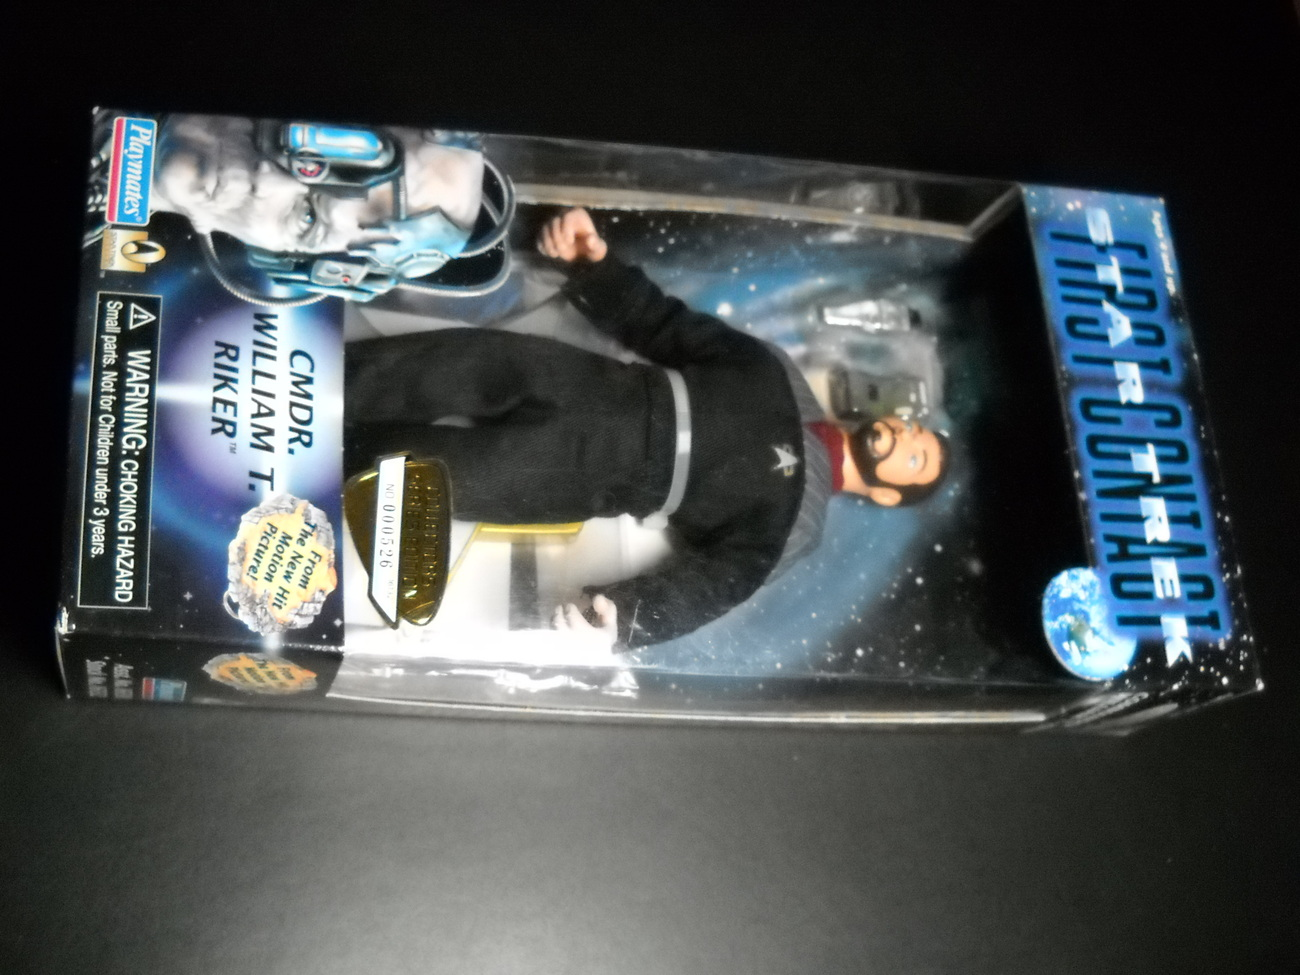 Toy star trek playmates star trek first contact commander william t riker 1996 9 inch boxed sealed 01